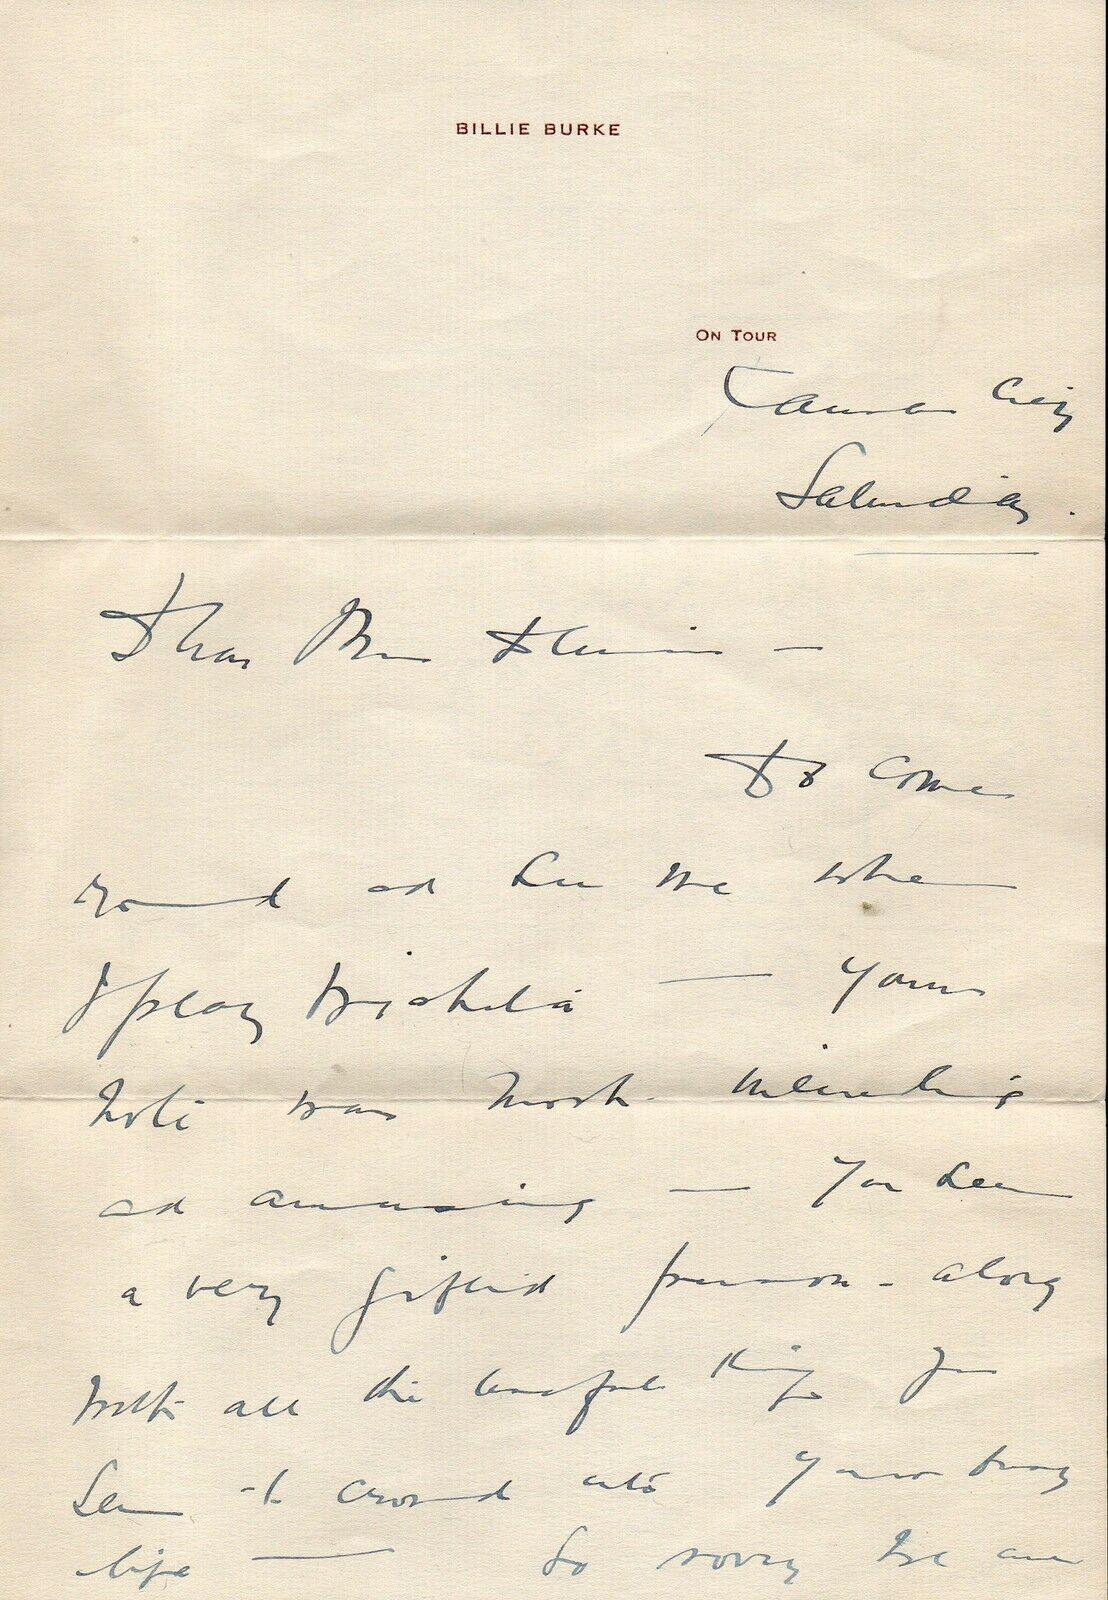 BILLIE BURKE Handwritten and signed letter. Nice autograph. The Wizard of Oz